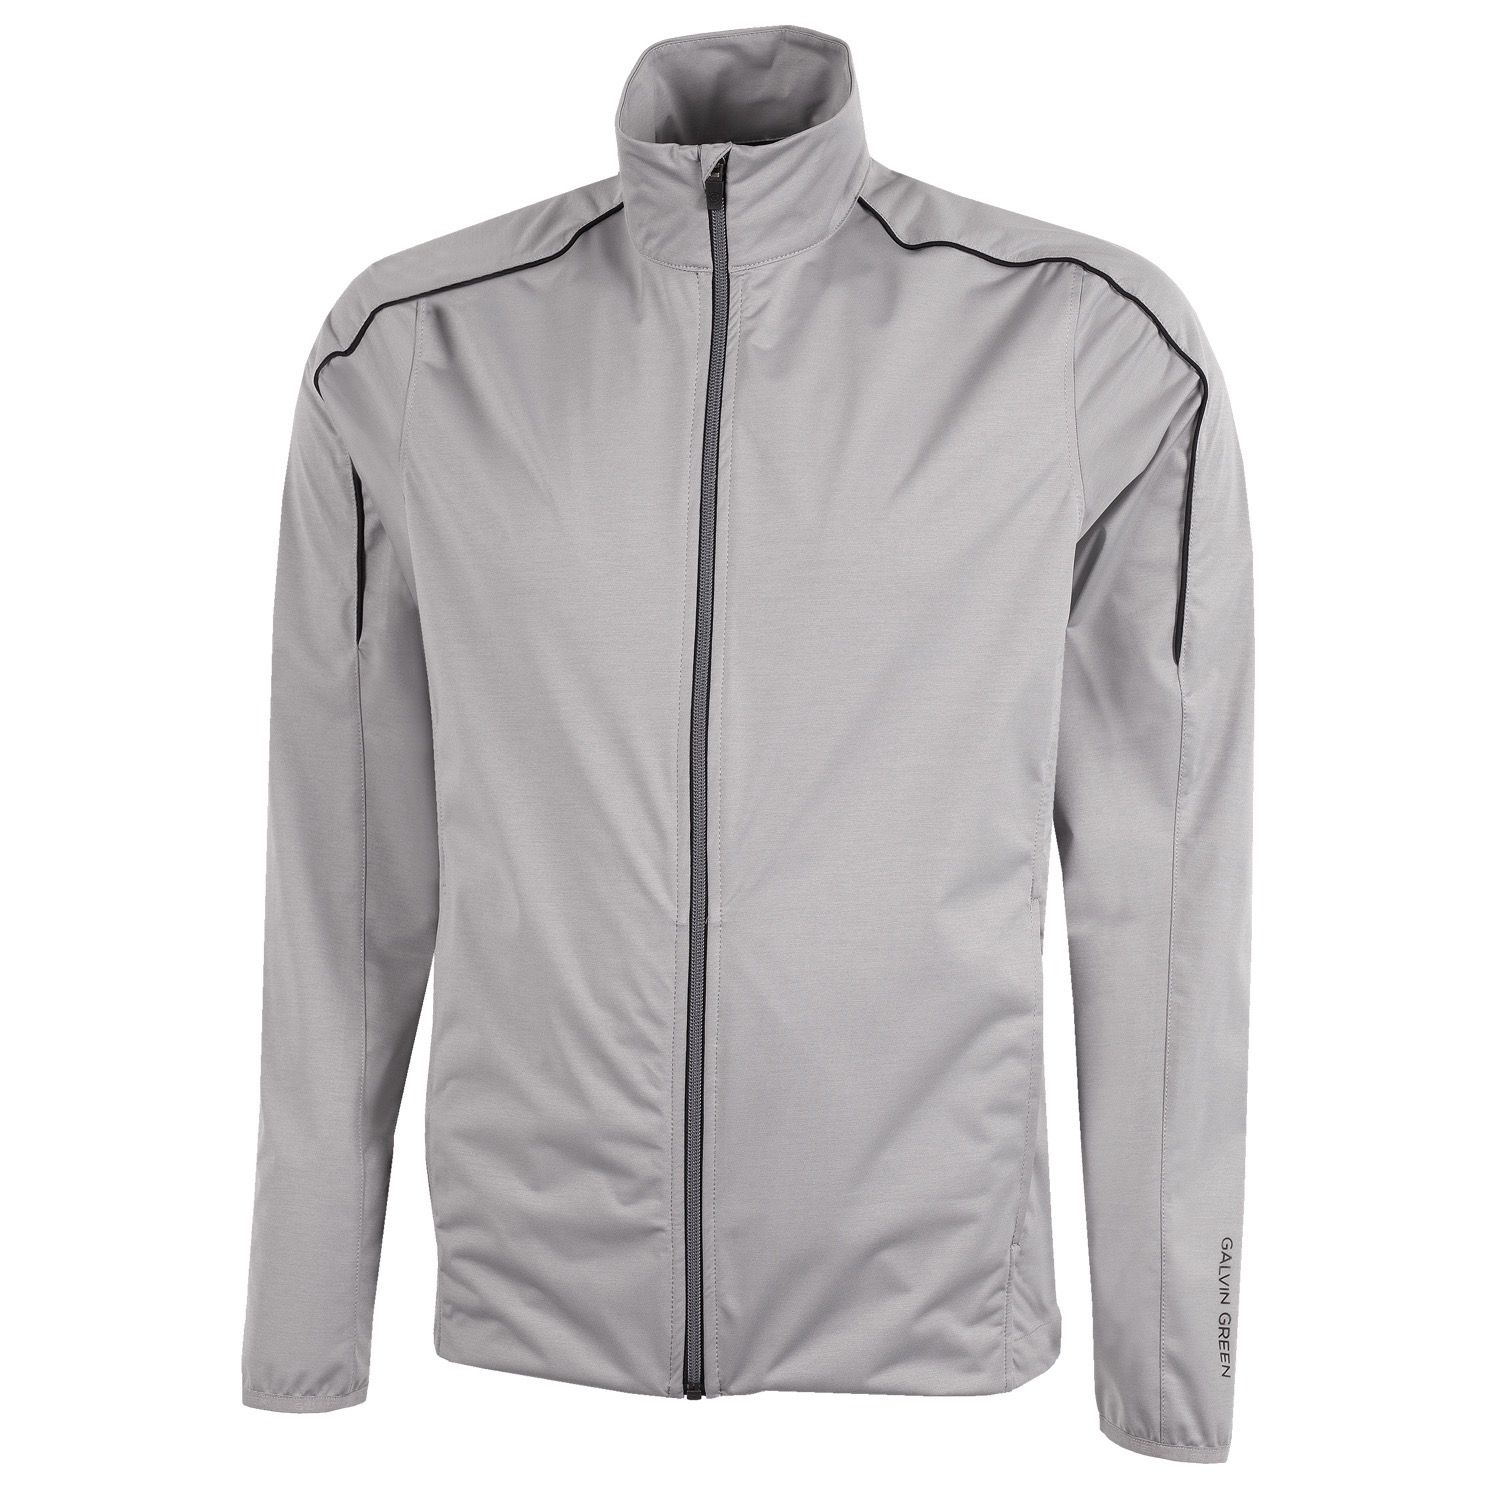 Image of Galvin Green Langley Interface-1 Jacket